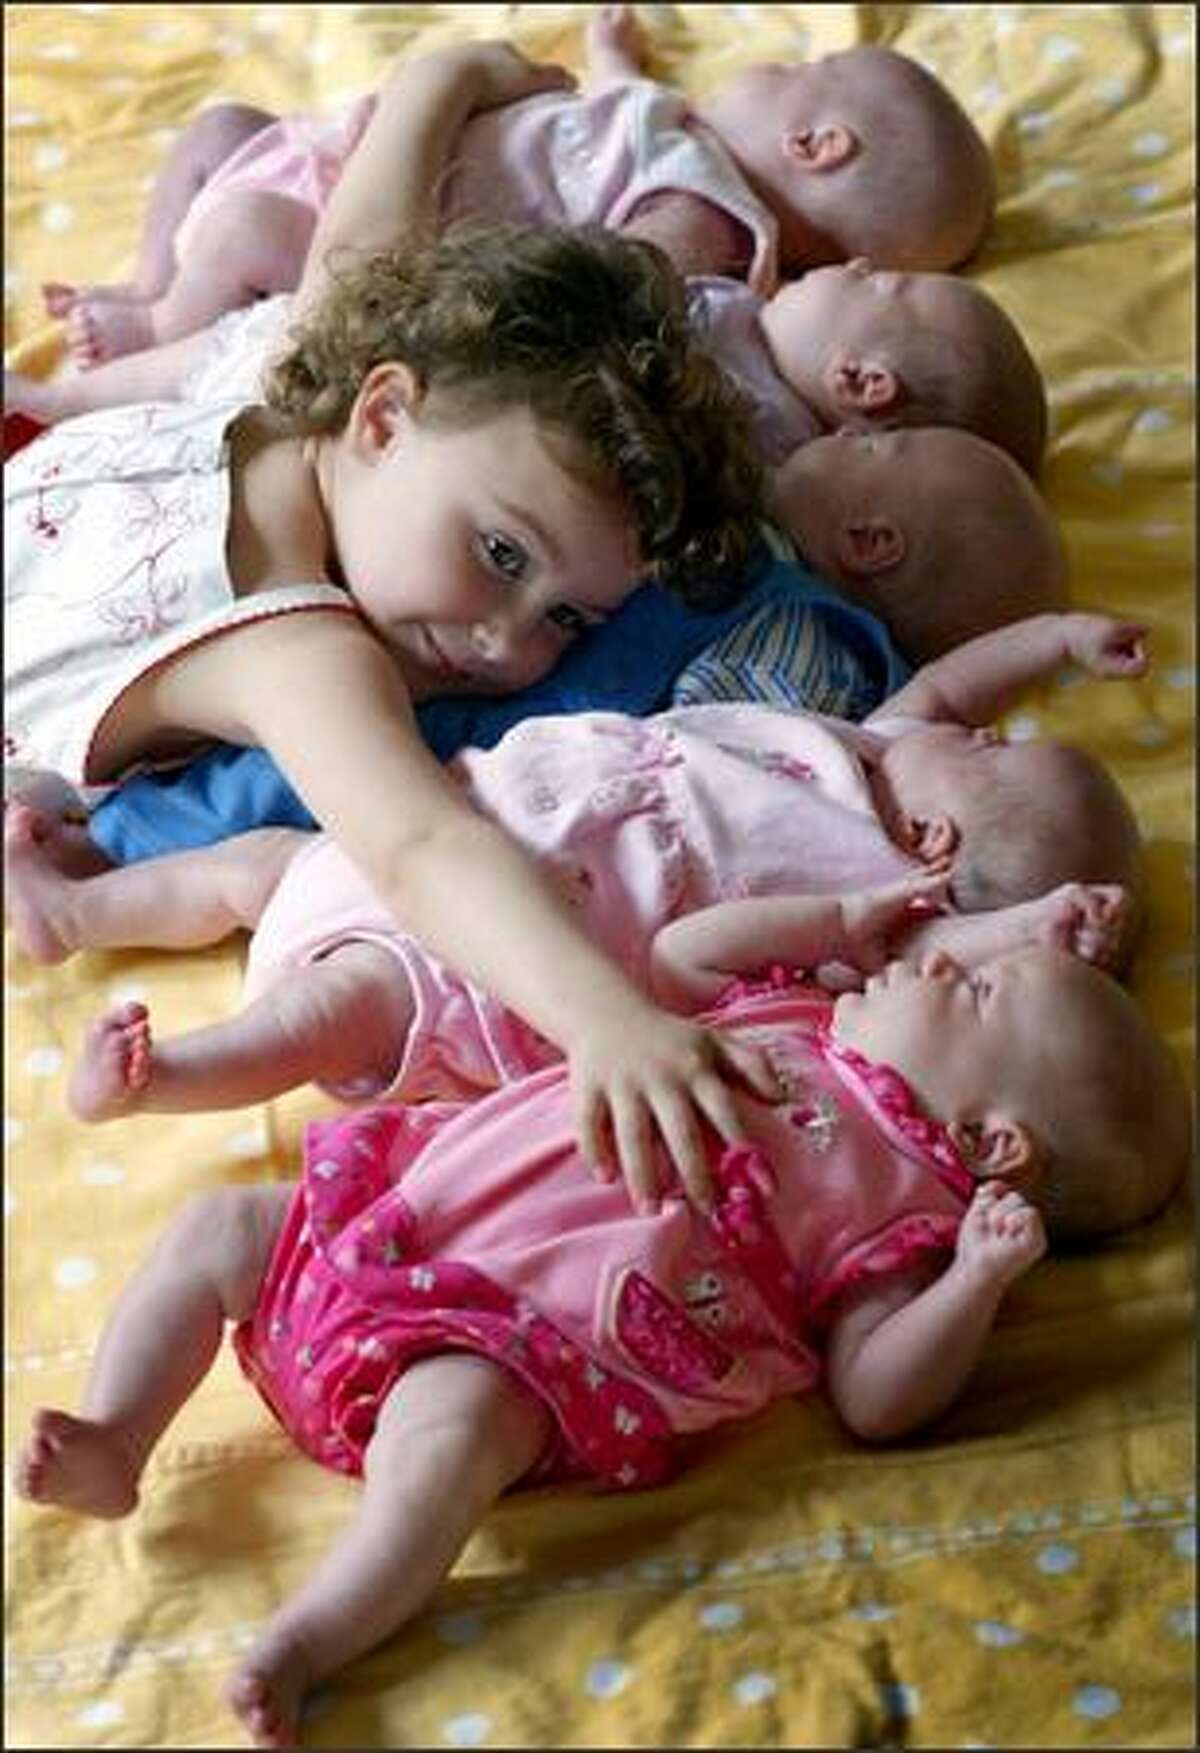 Lilli Stevenson, 3, tries to hug all of her new siblings at once at their home in Poulsbo. They're the first recorded set of quintuplets born in Western Washington. From the top: Belle, Scarlett, Weston, Camilee and Aniston were born March 30. Lilli is a very involved big sister.